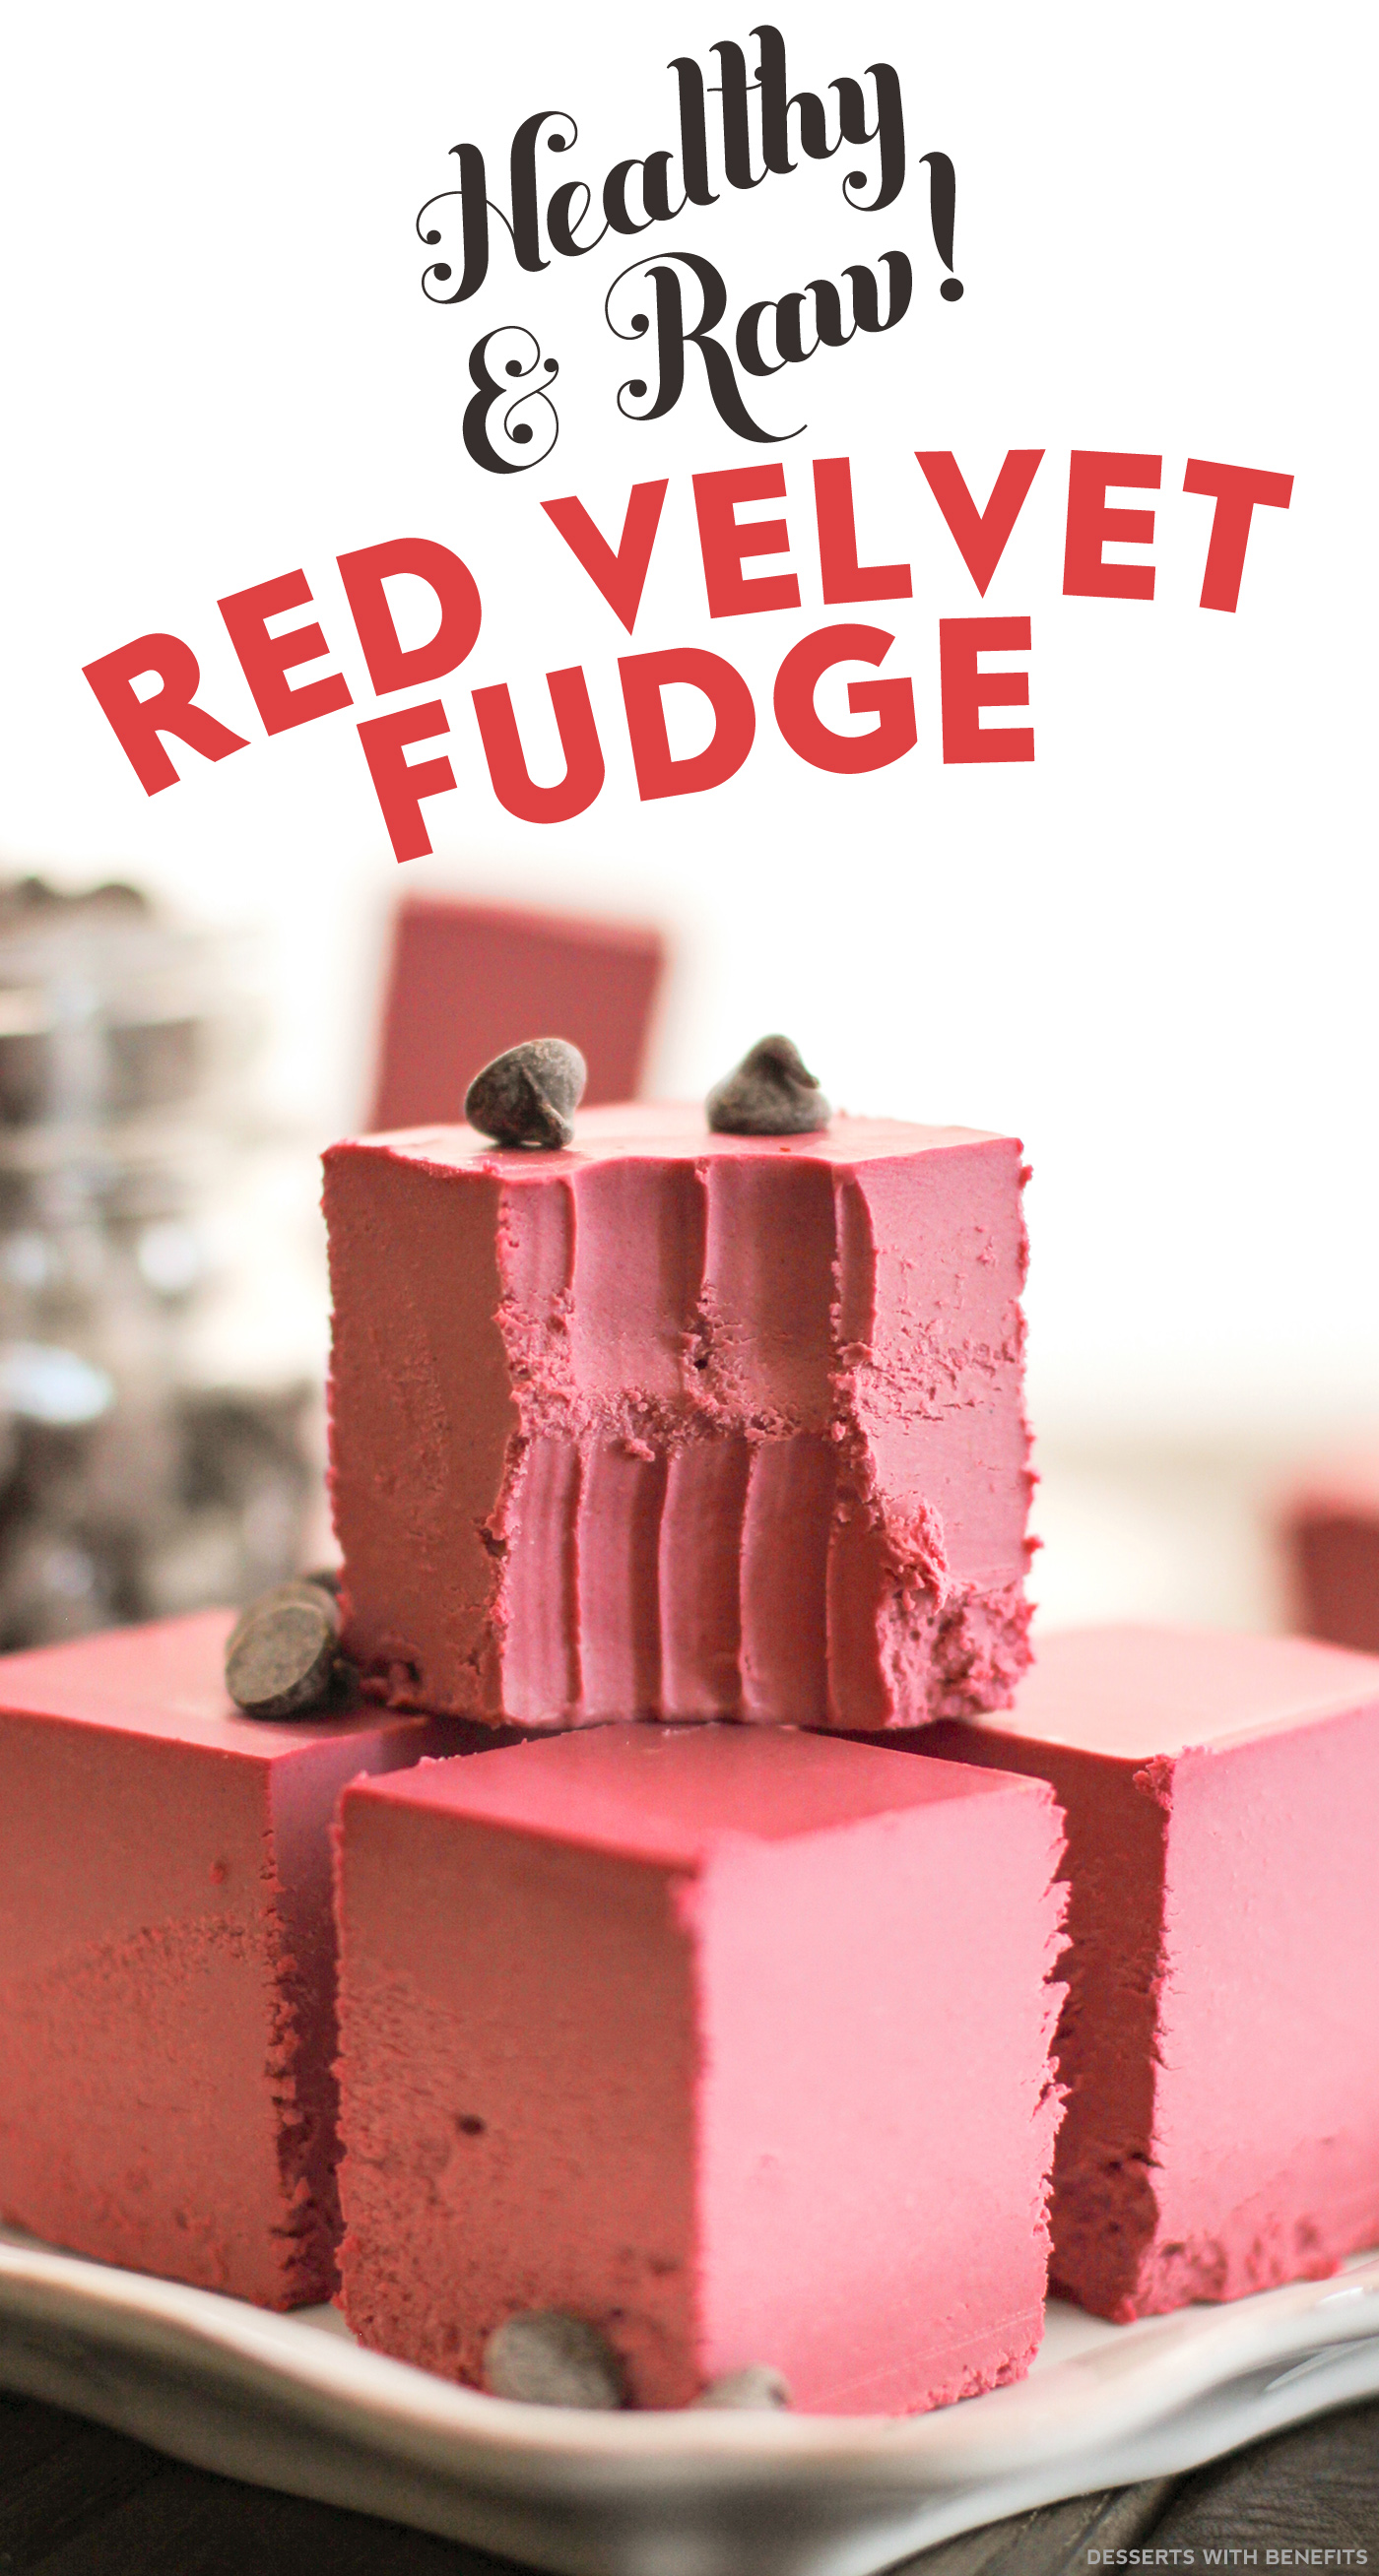 Healthy Raw Red Velvet Fudge recipe (refined sugar free, low carb, high fiber, gluten free, dairy free, vegan) - Healthy Dessert Recipes at Desserts with Benefits